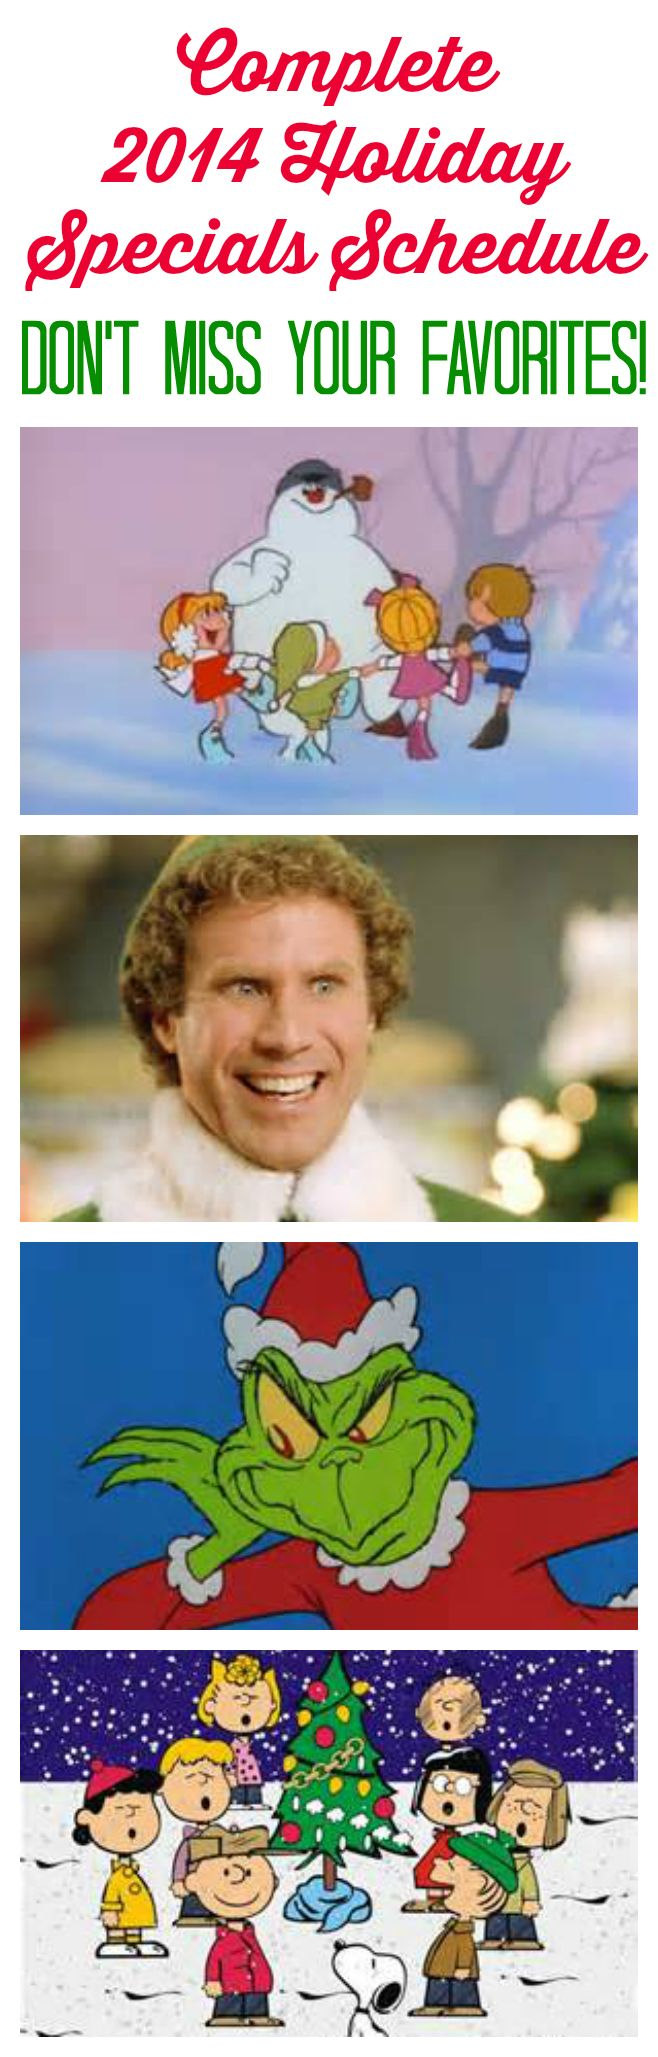 It's a complete 2014 Holiday TV Specials Schedule!